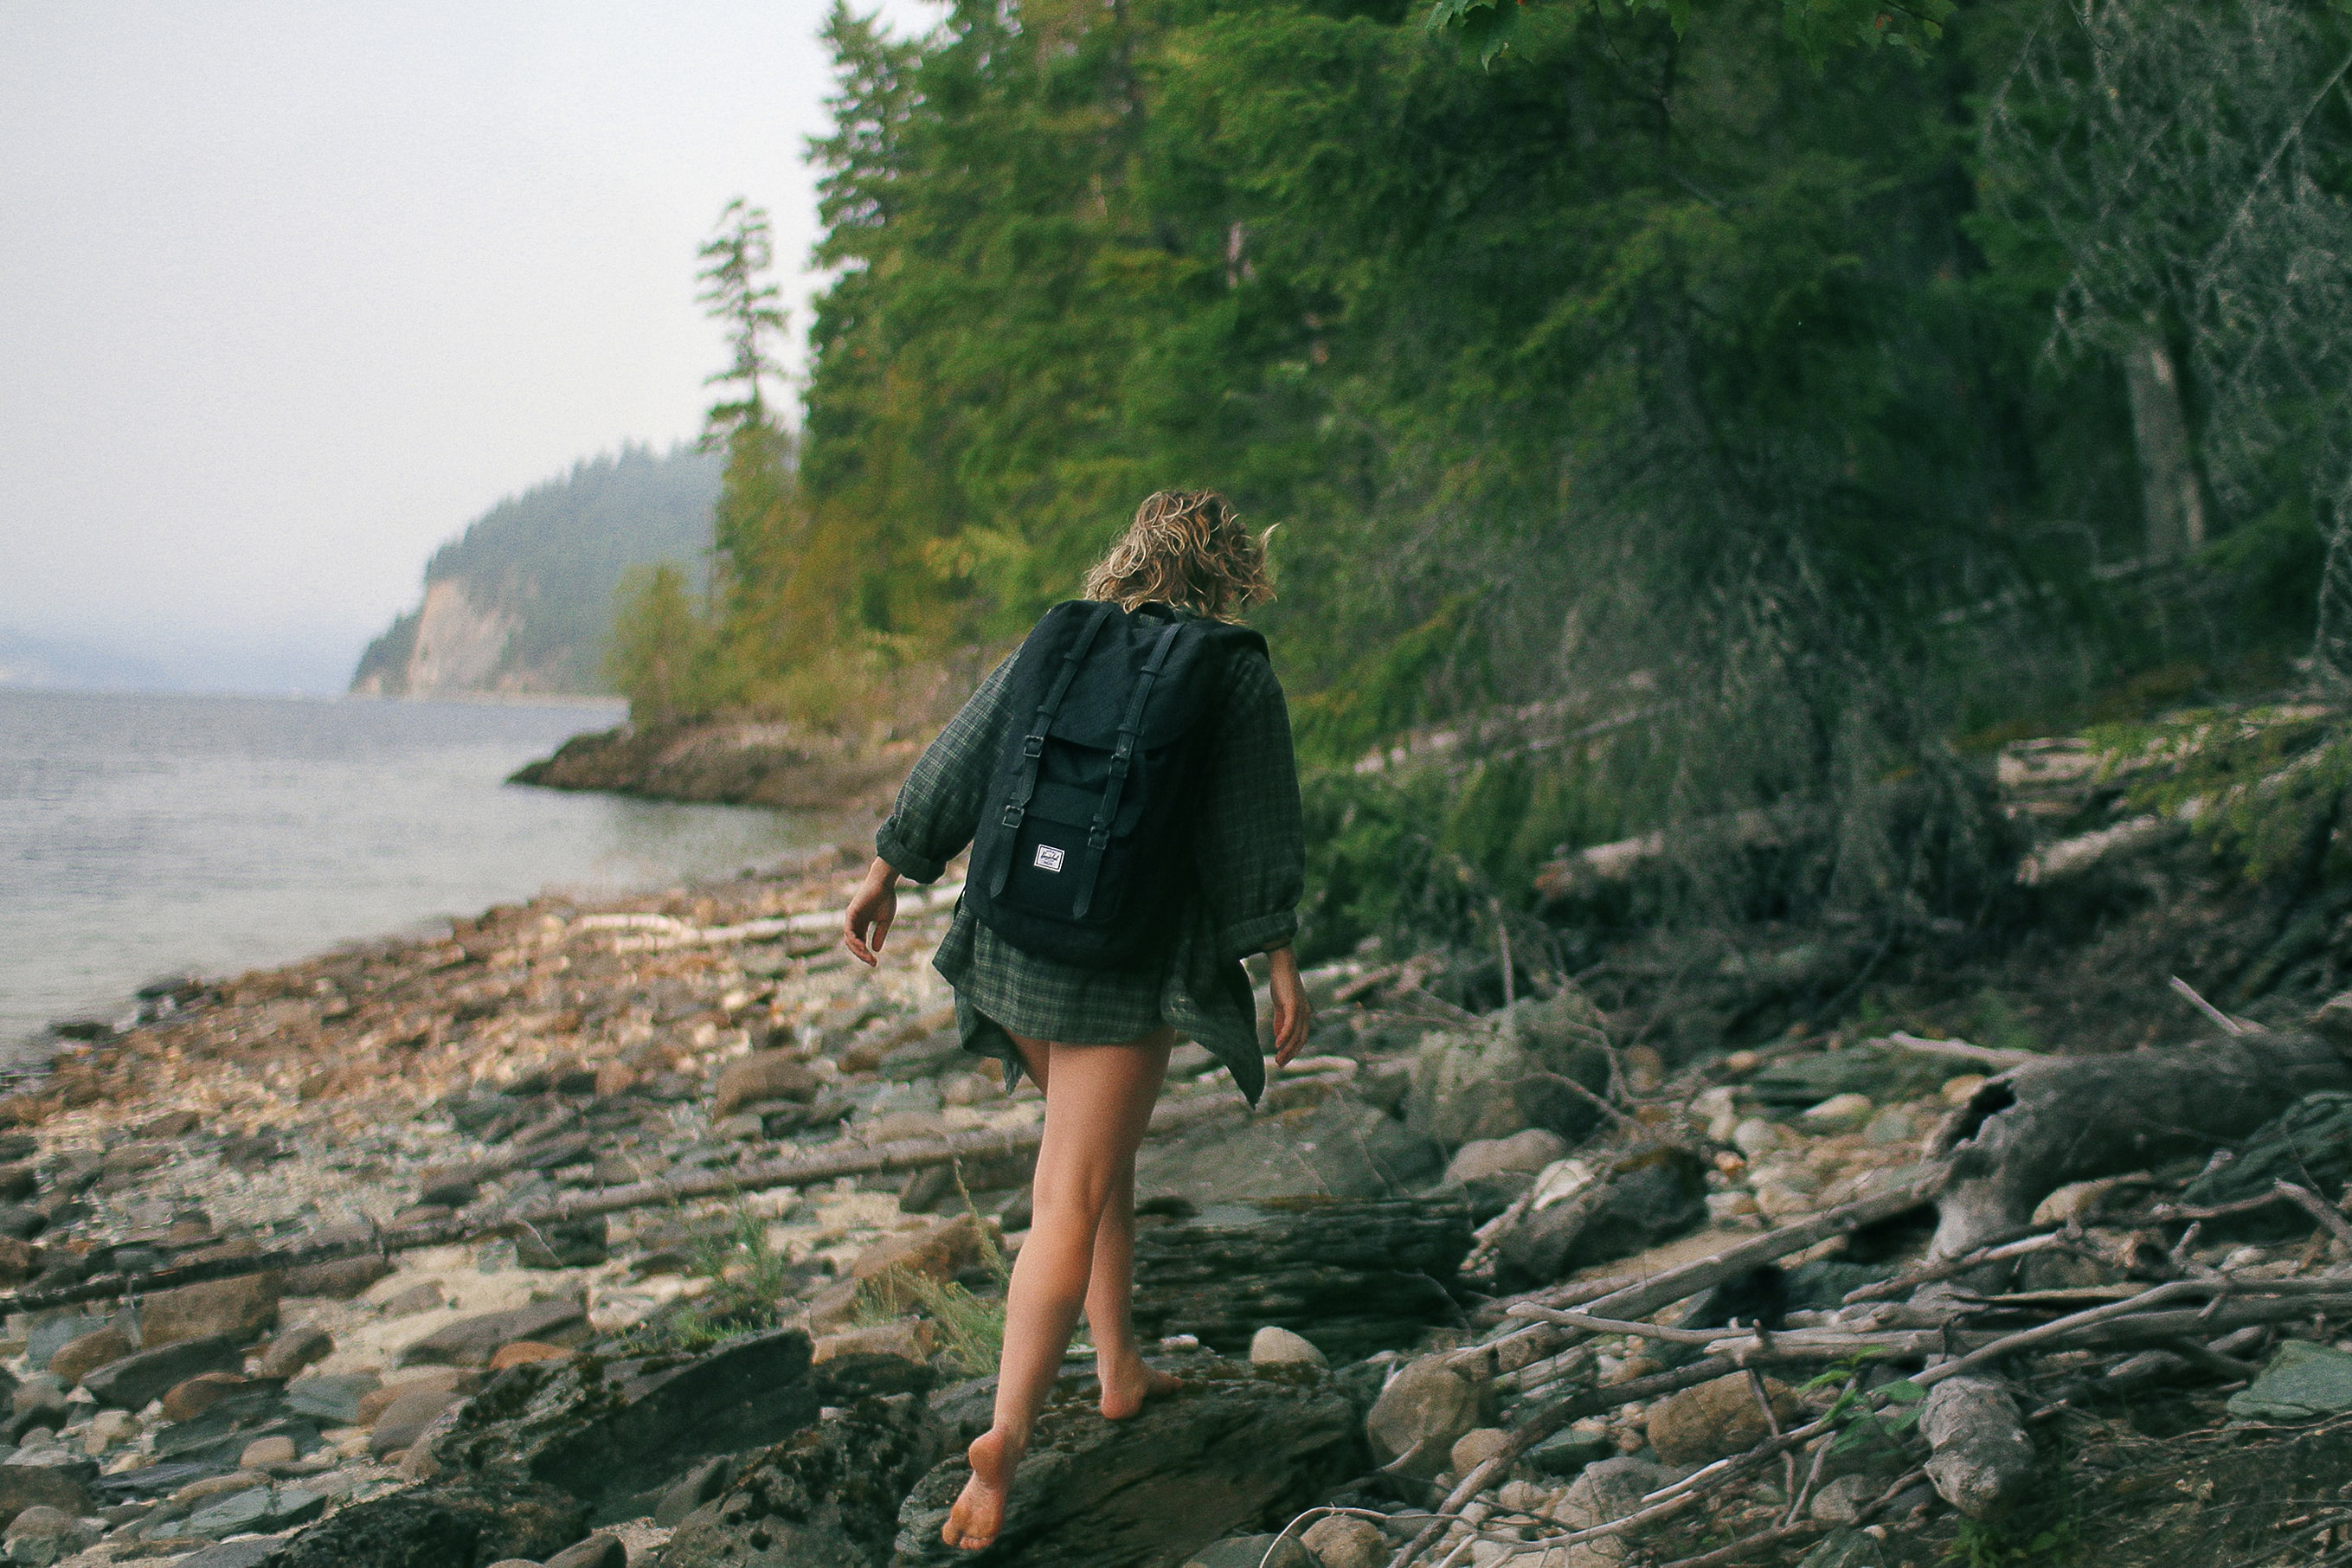 woman walking on rocky seashore